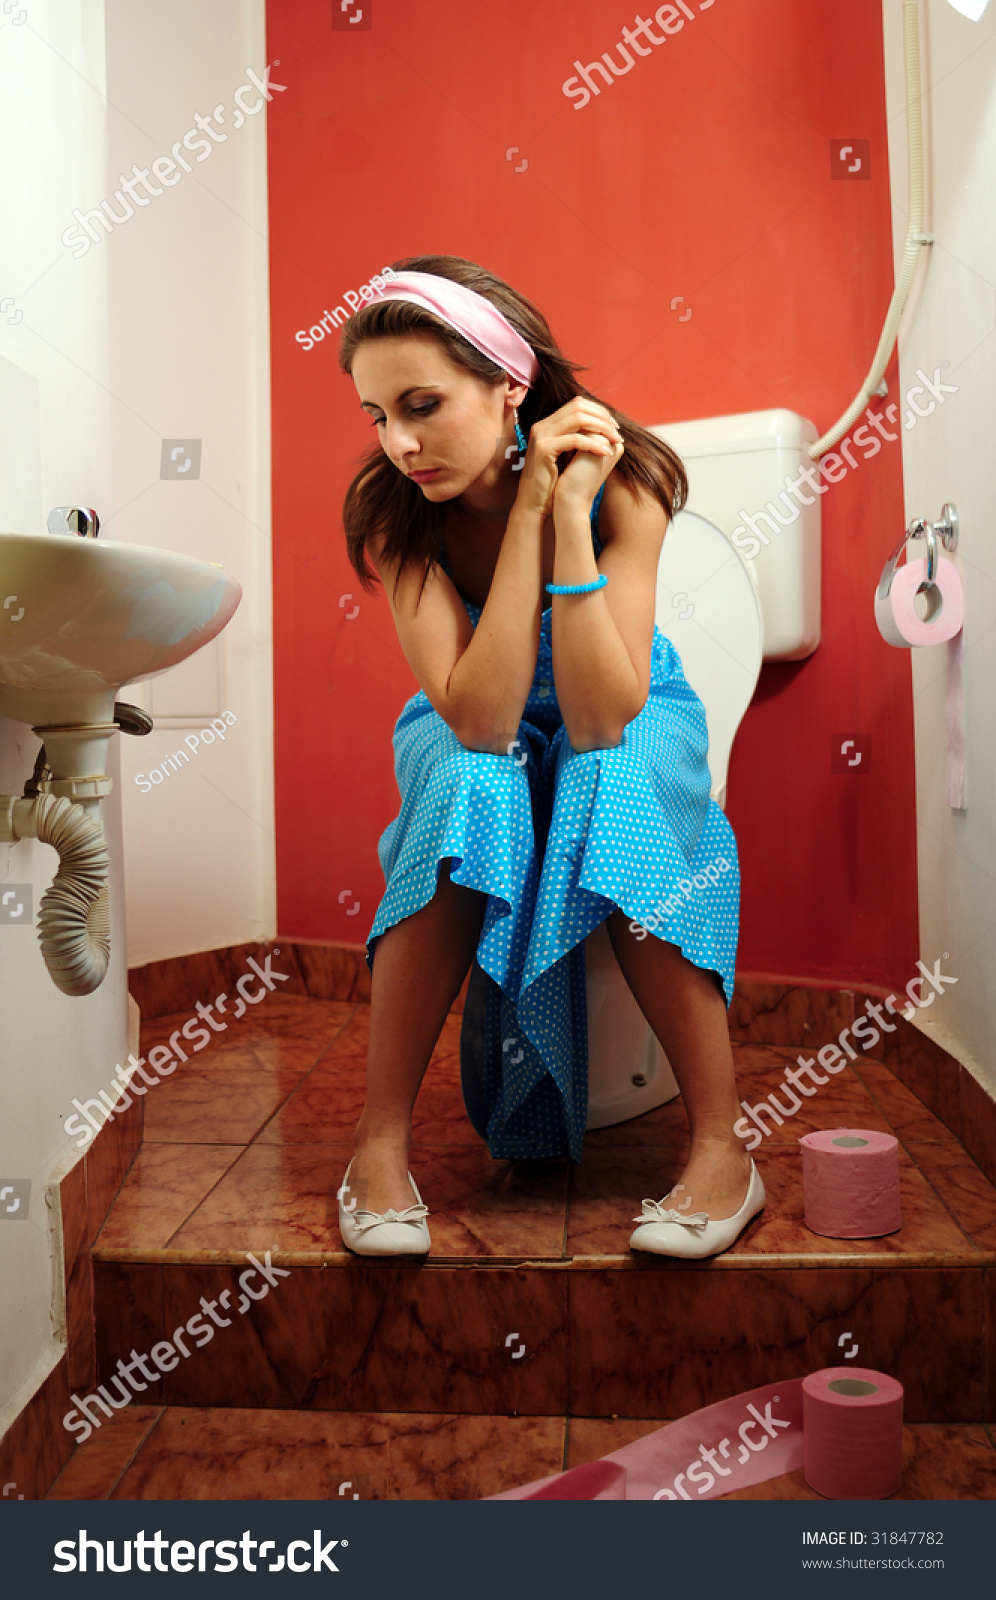 woman sitting on the toilet, Stock Photo, Picture And